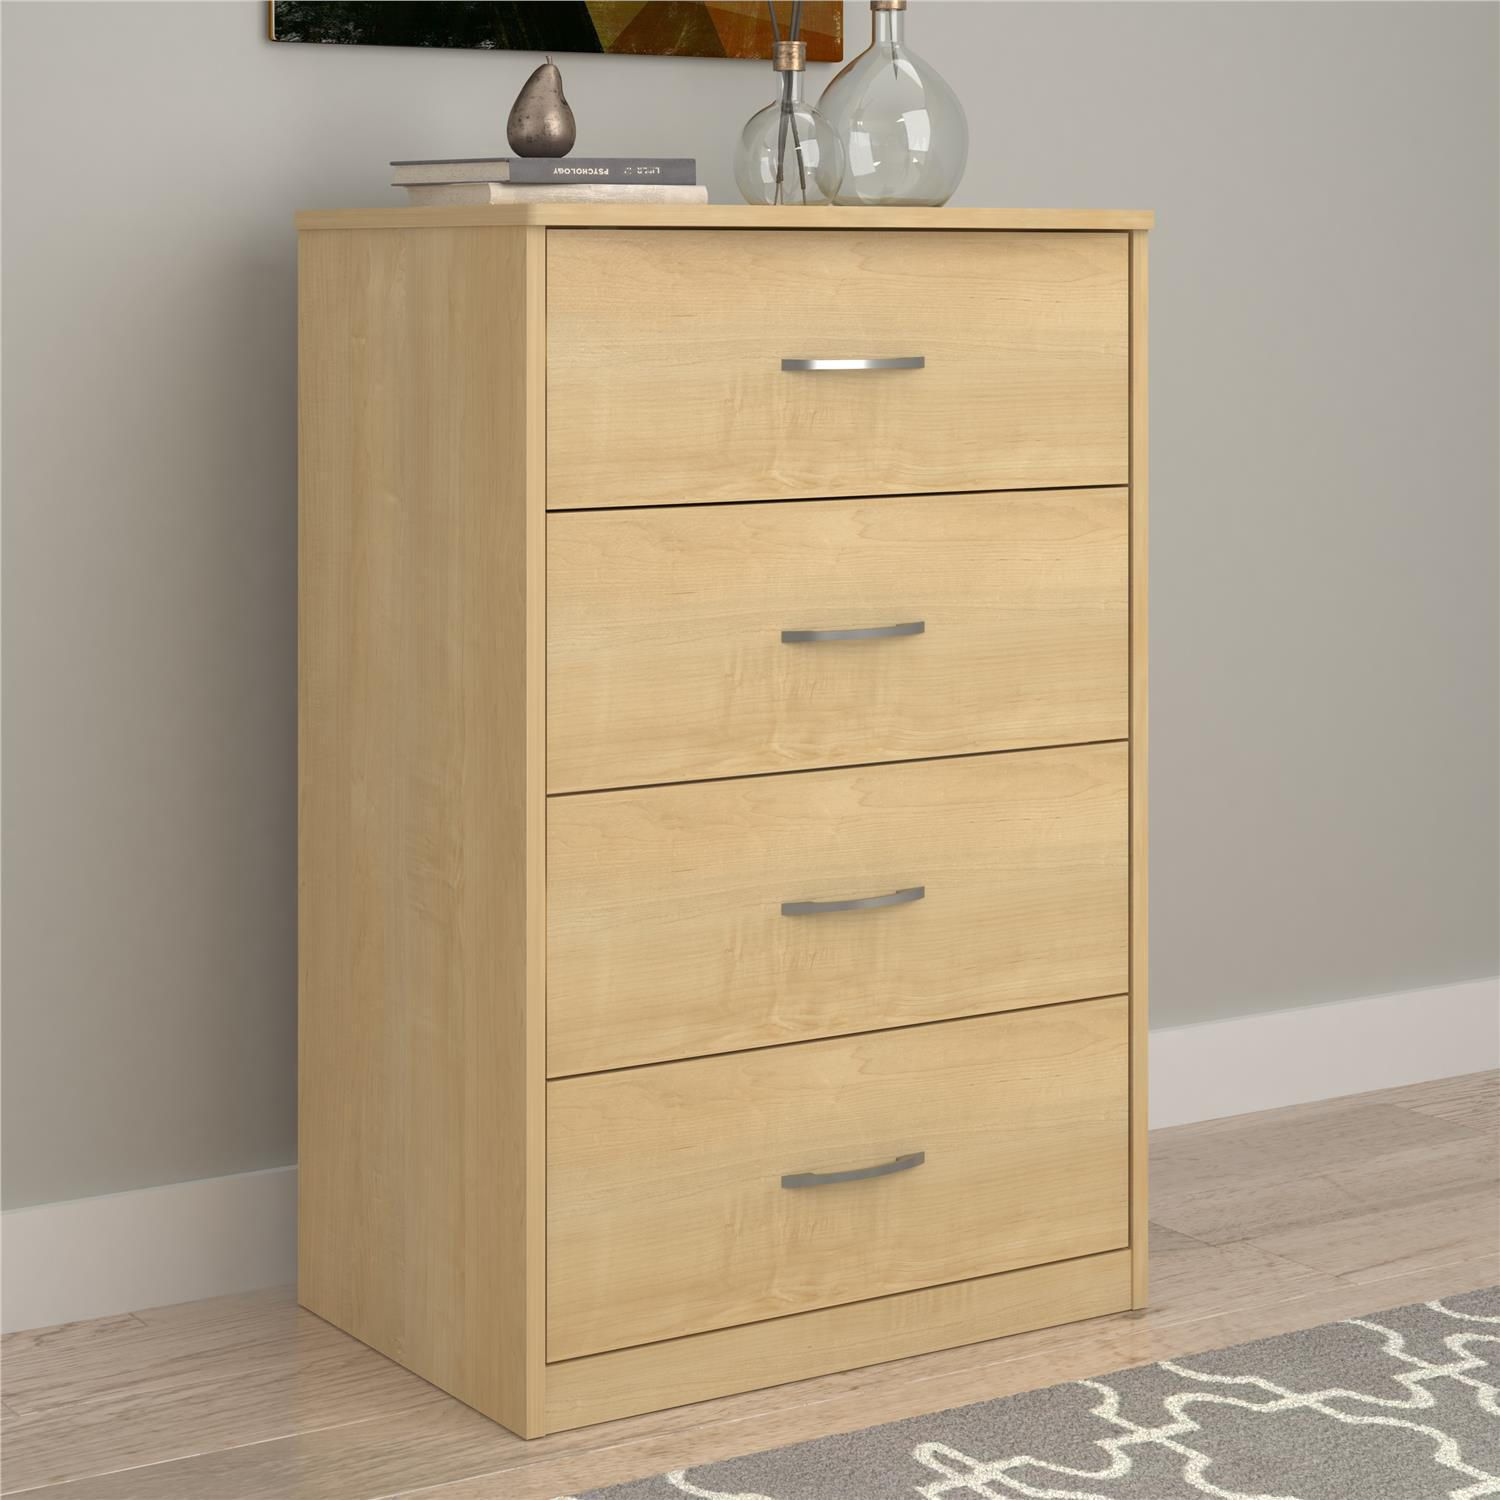 gubi greta pages drawer grossman desk four hivemodern dresser com series